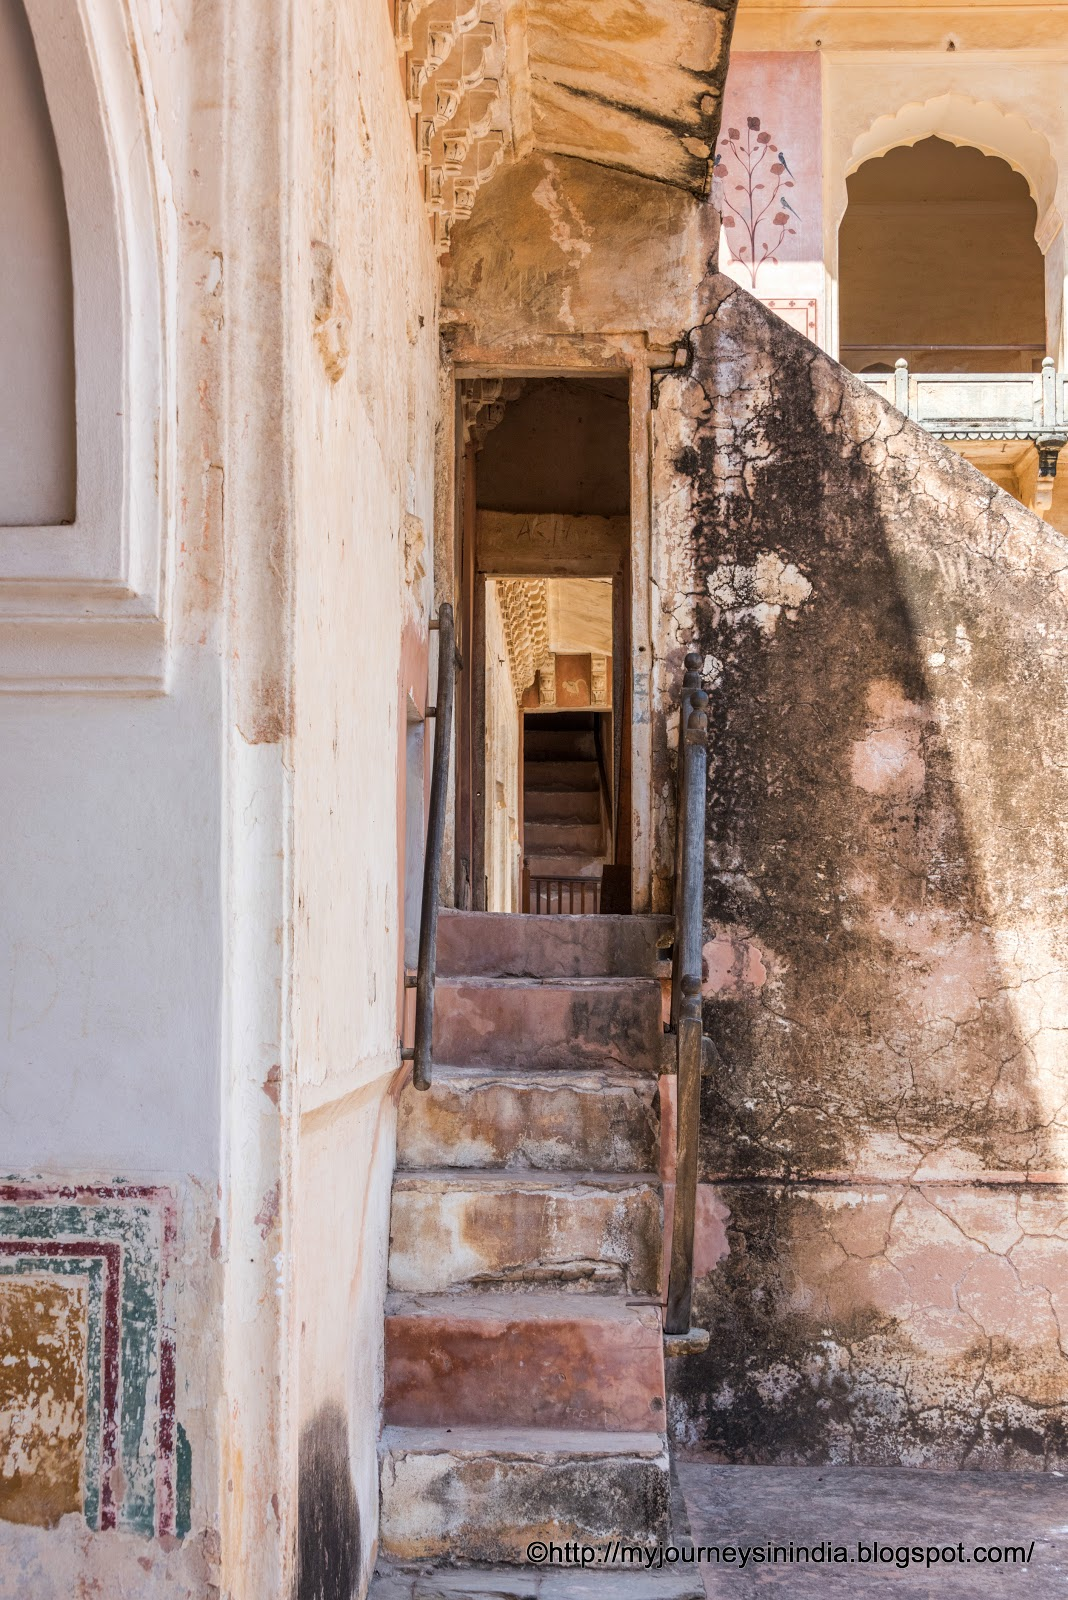 Narrow staircase in Amer Fort Jaipur